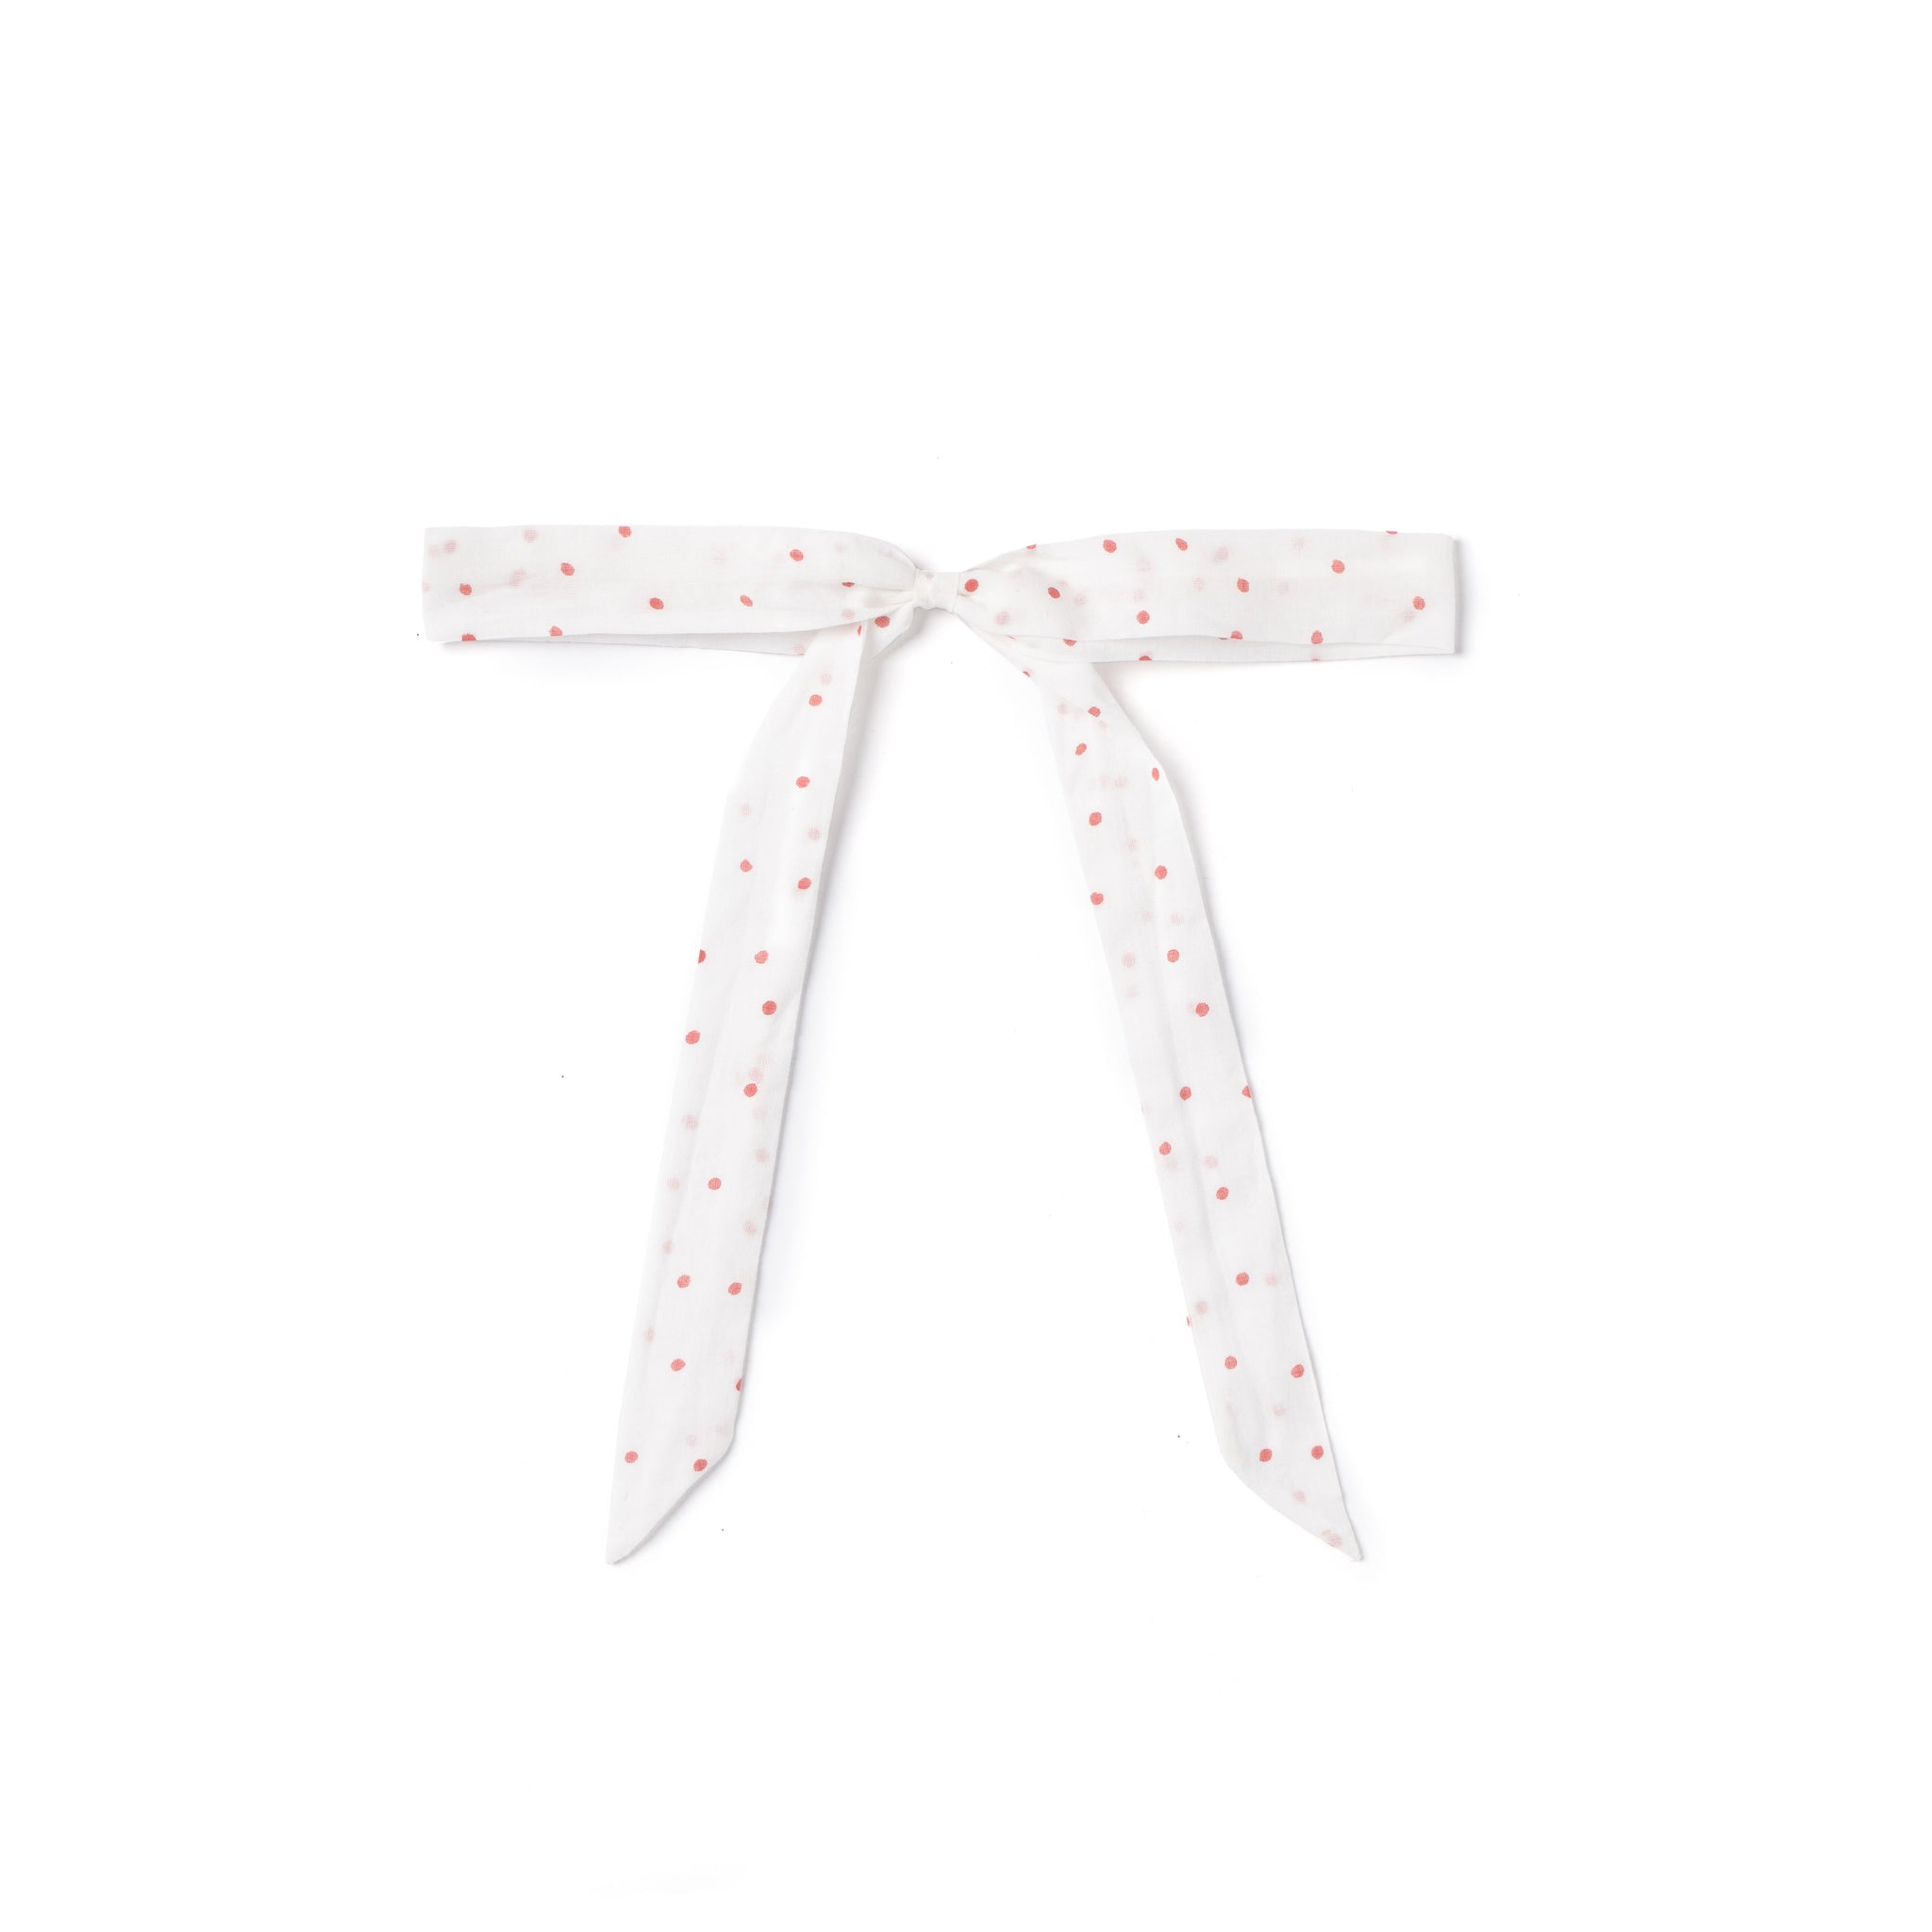 Ribbon Bow, Polka Dot